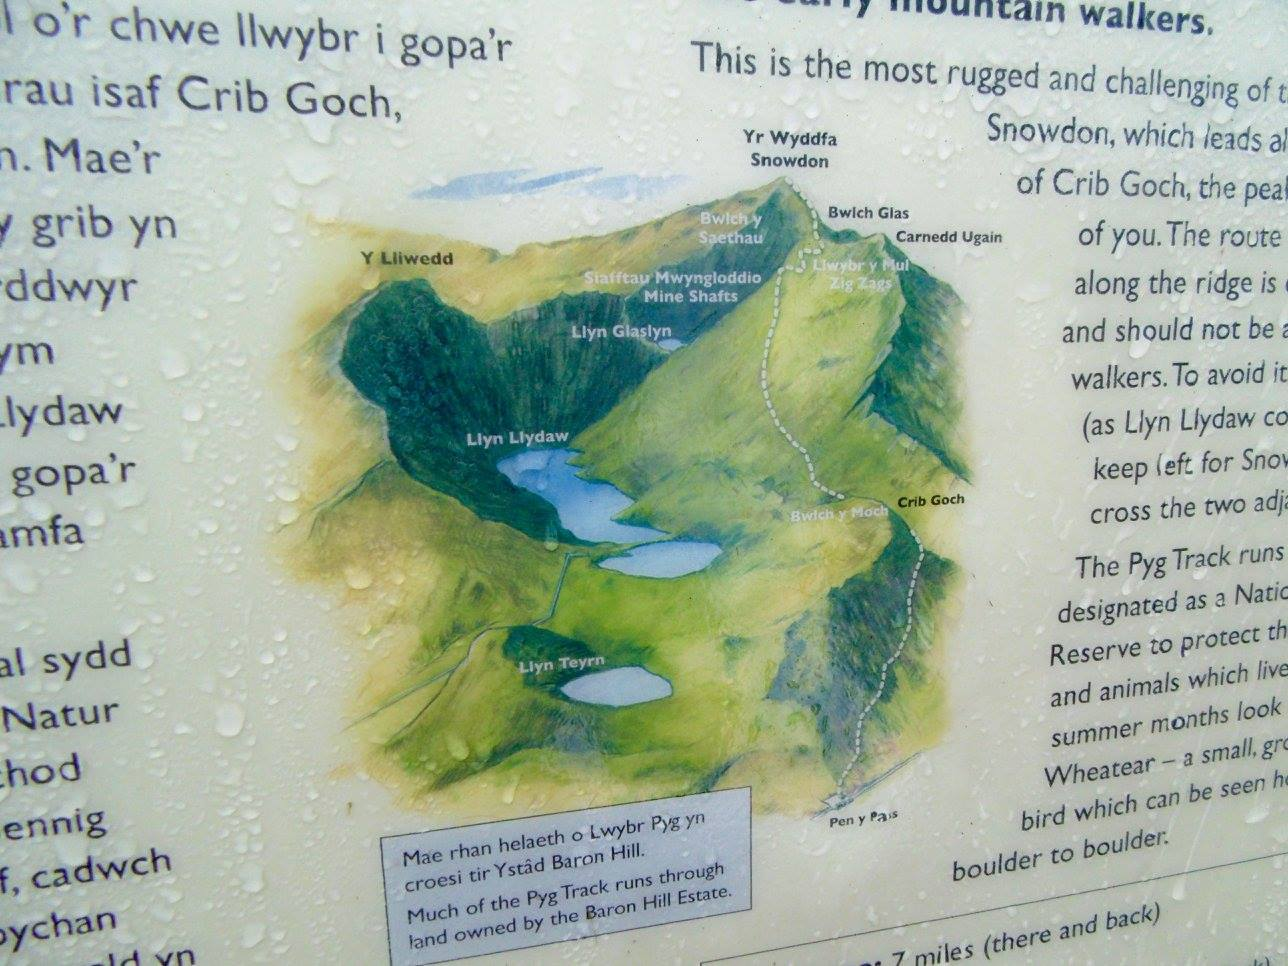 A map showing paths up to the summit of Snowdon